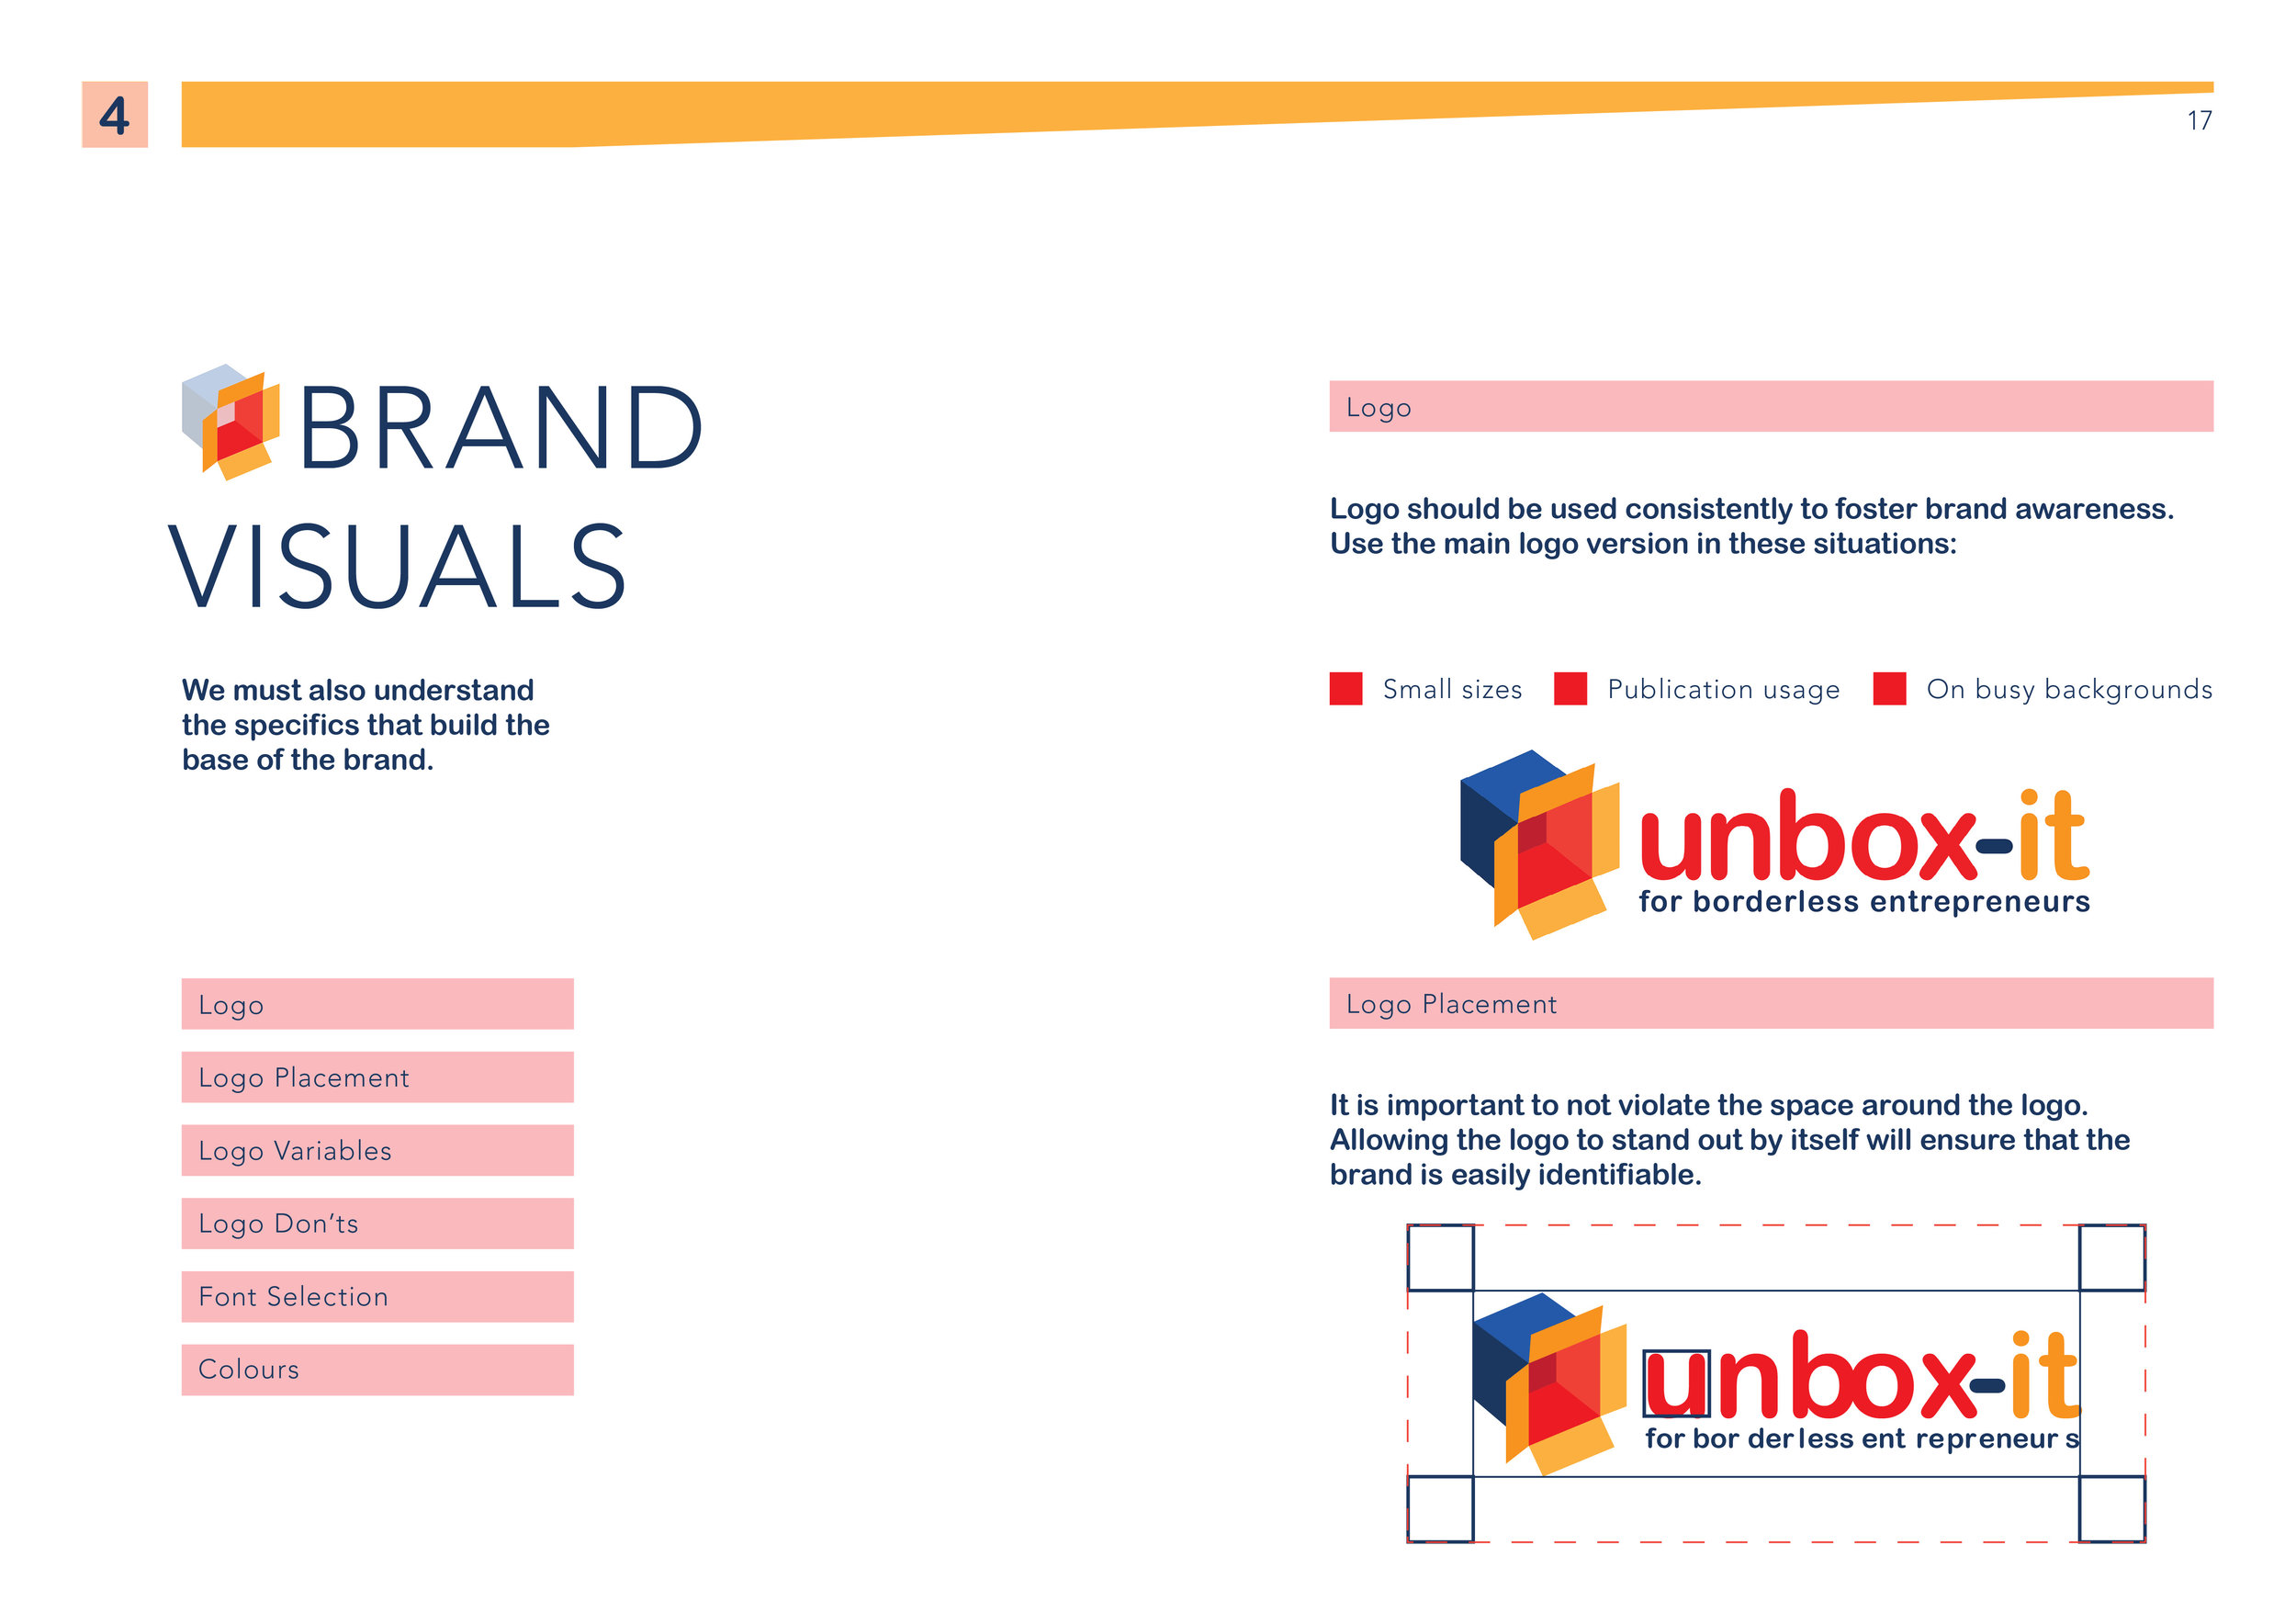 Unbox-it Brand Guidelines9.jpg